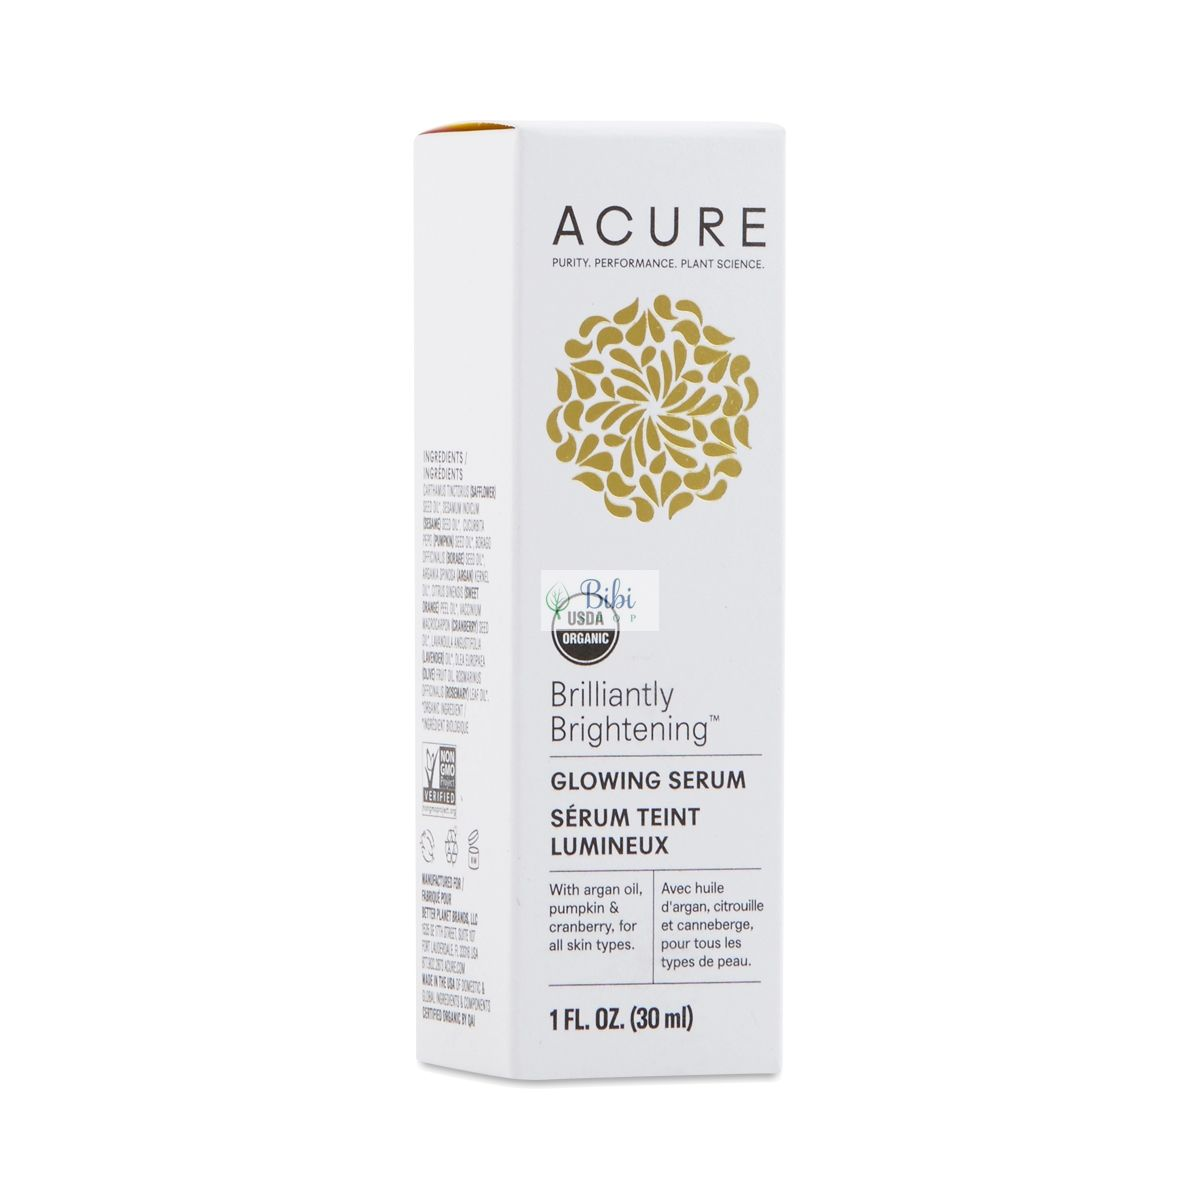 tinh-dau-lam-tre-hoa-da-acure-radically-rejuvenating-rose-argan-oil